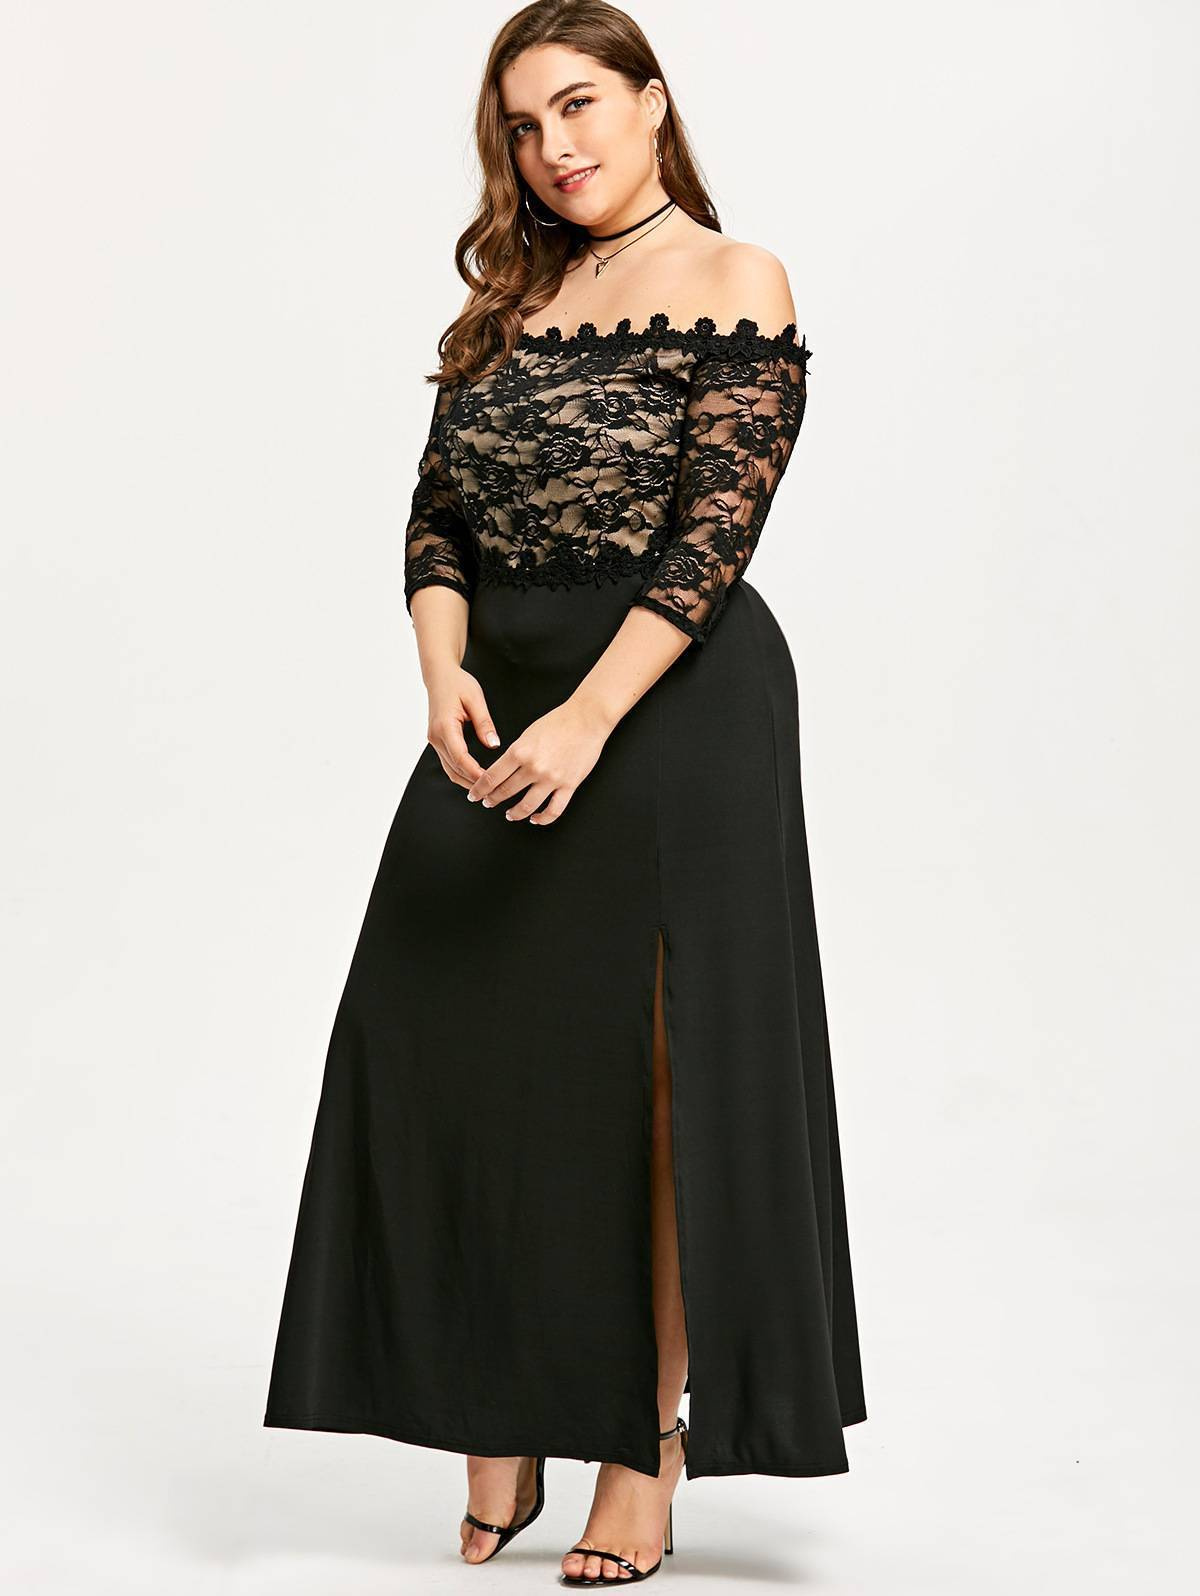 PLUS SIZE LACE OFF SHOULDER SPLIT MAXI DRESS | ADDICTED2FASHION